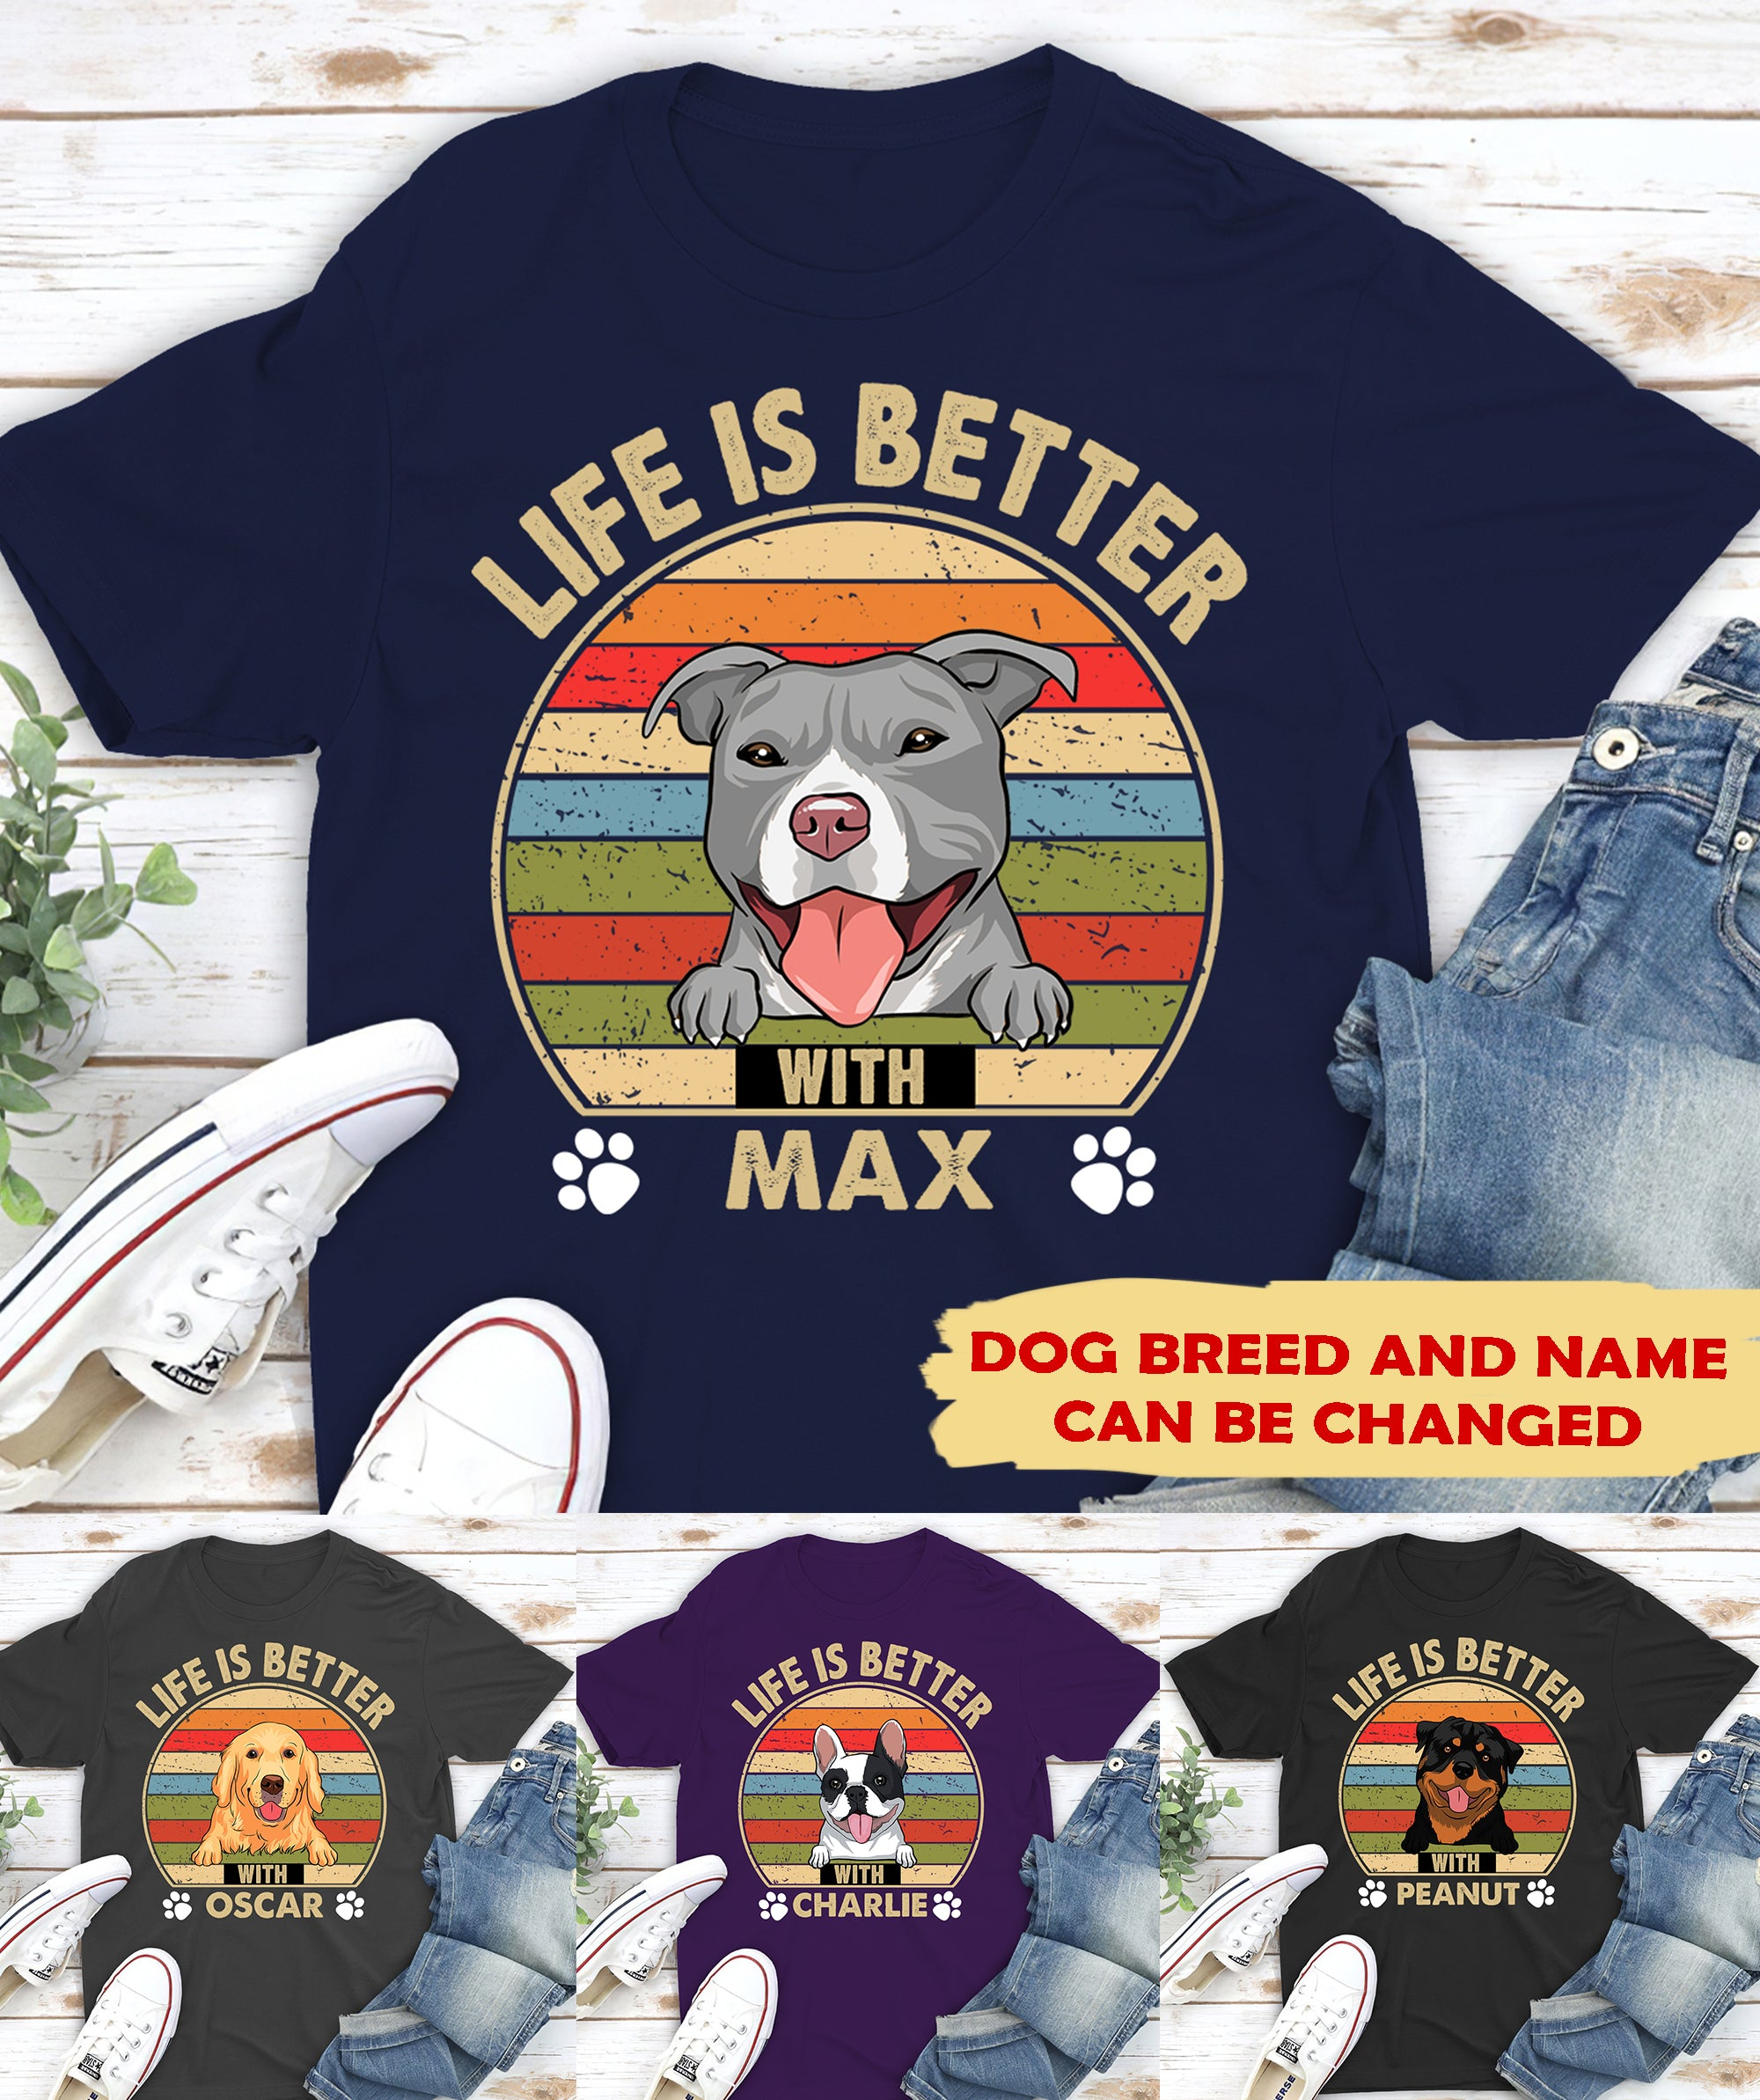 Life is better (Retro style) - Personalized Custom Unisex T-shirt